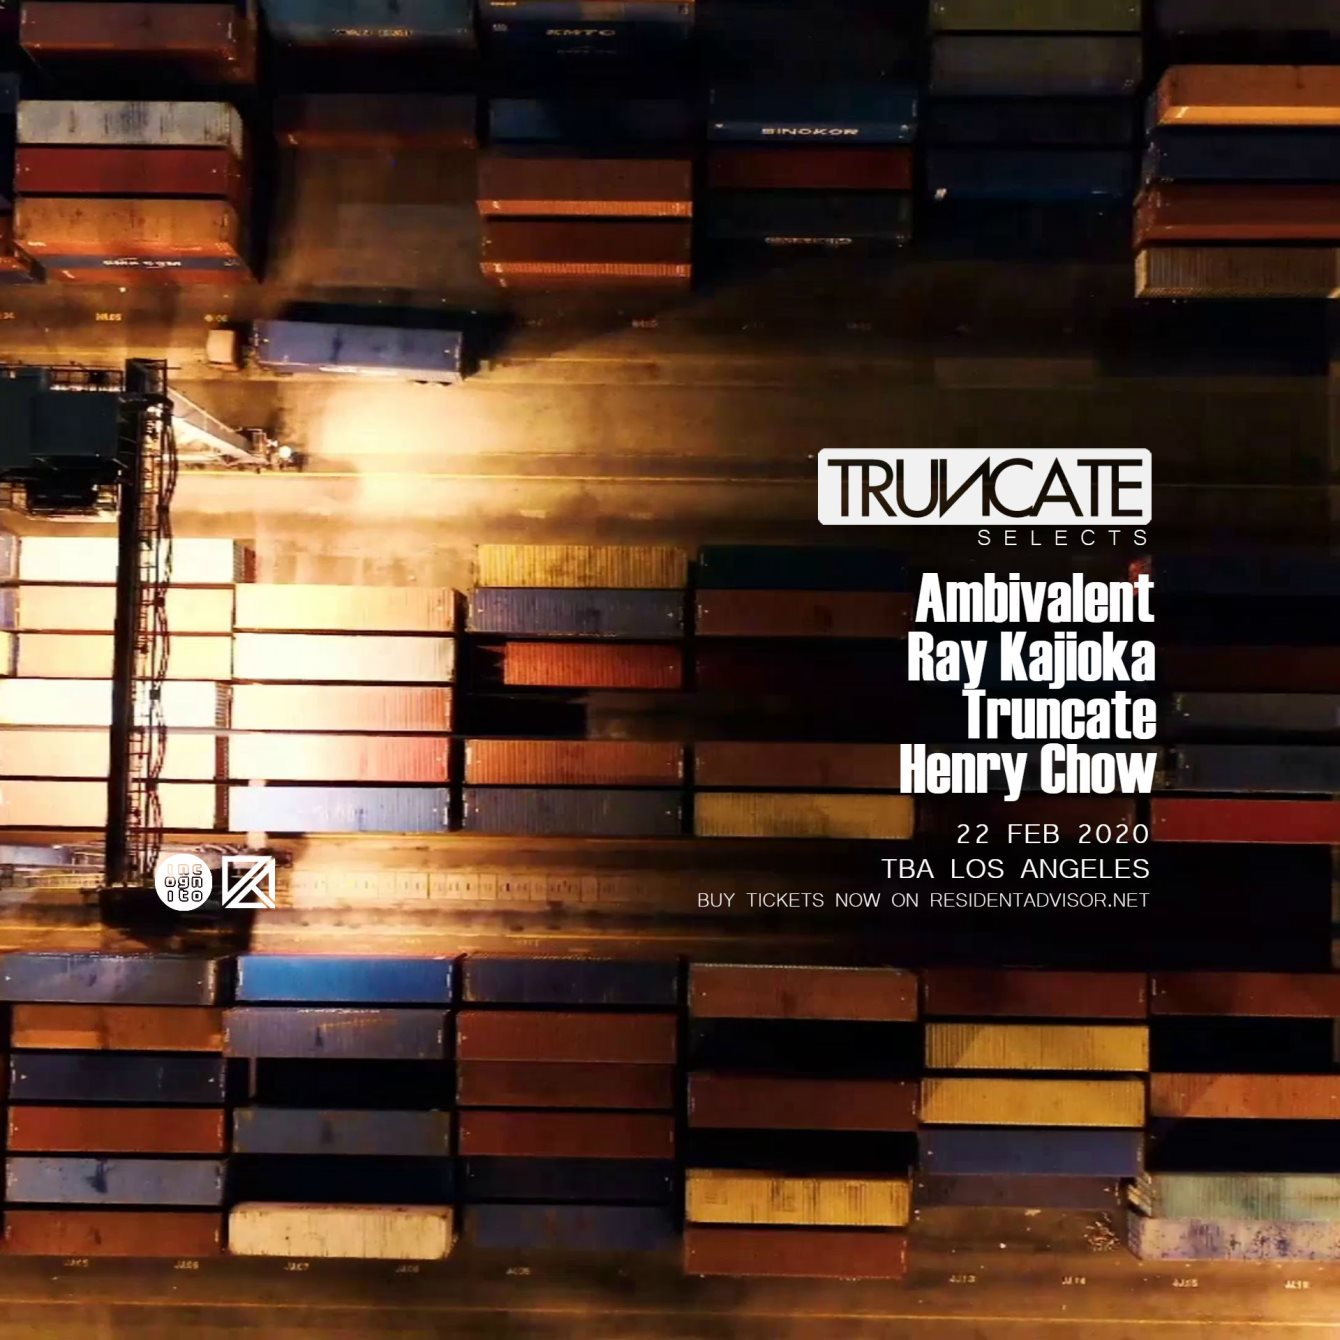 Truncate Selects with Ambivalent, Ray Kajioka, Henry Chow _ Dirty Epic x Incognito - Flyer front